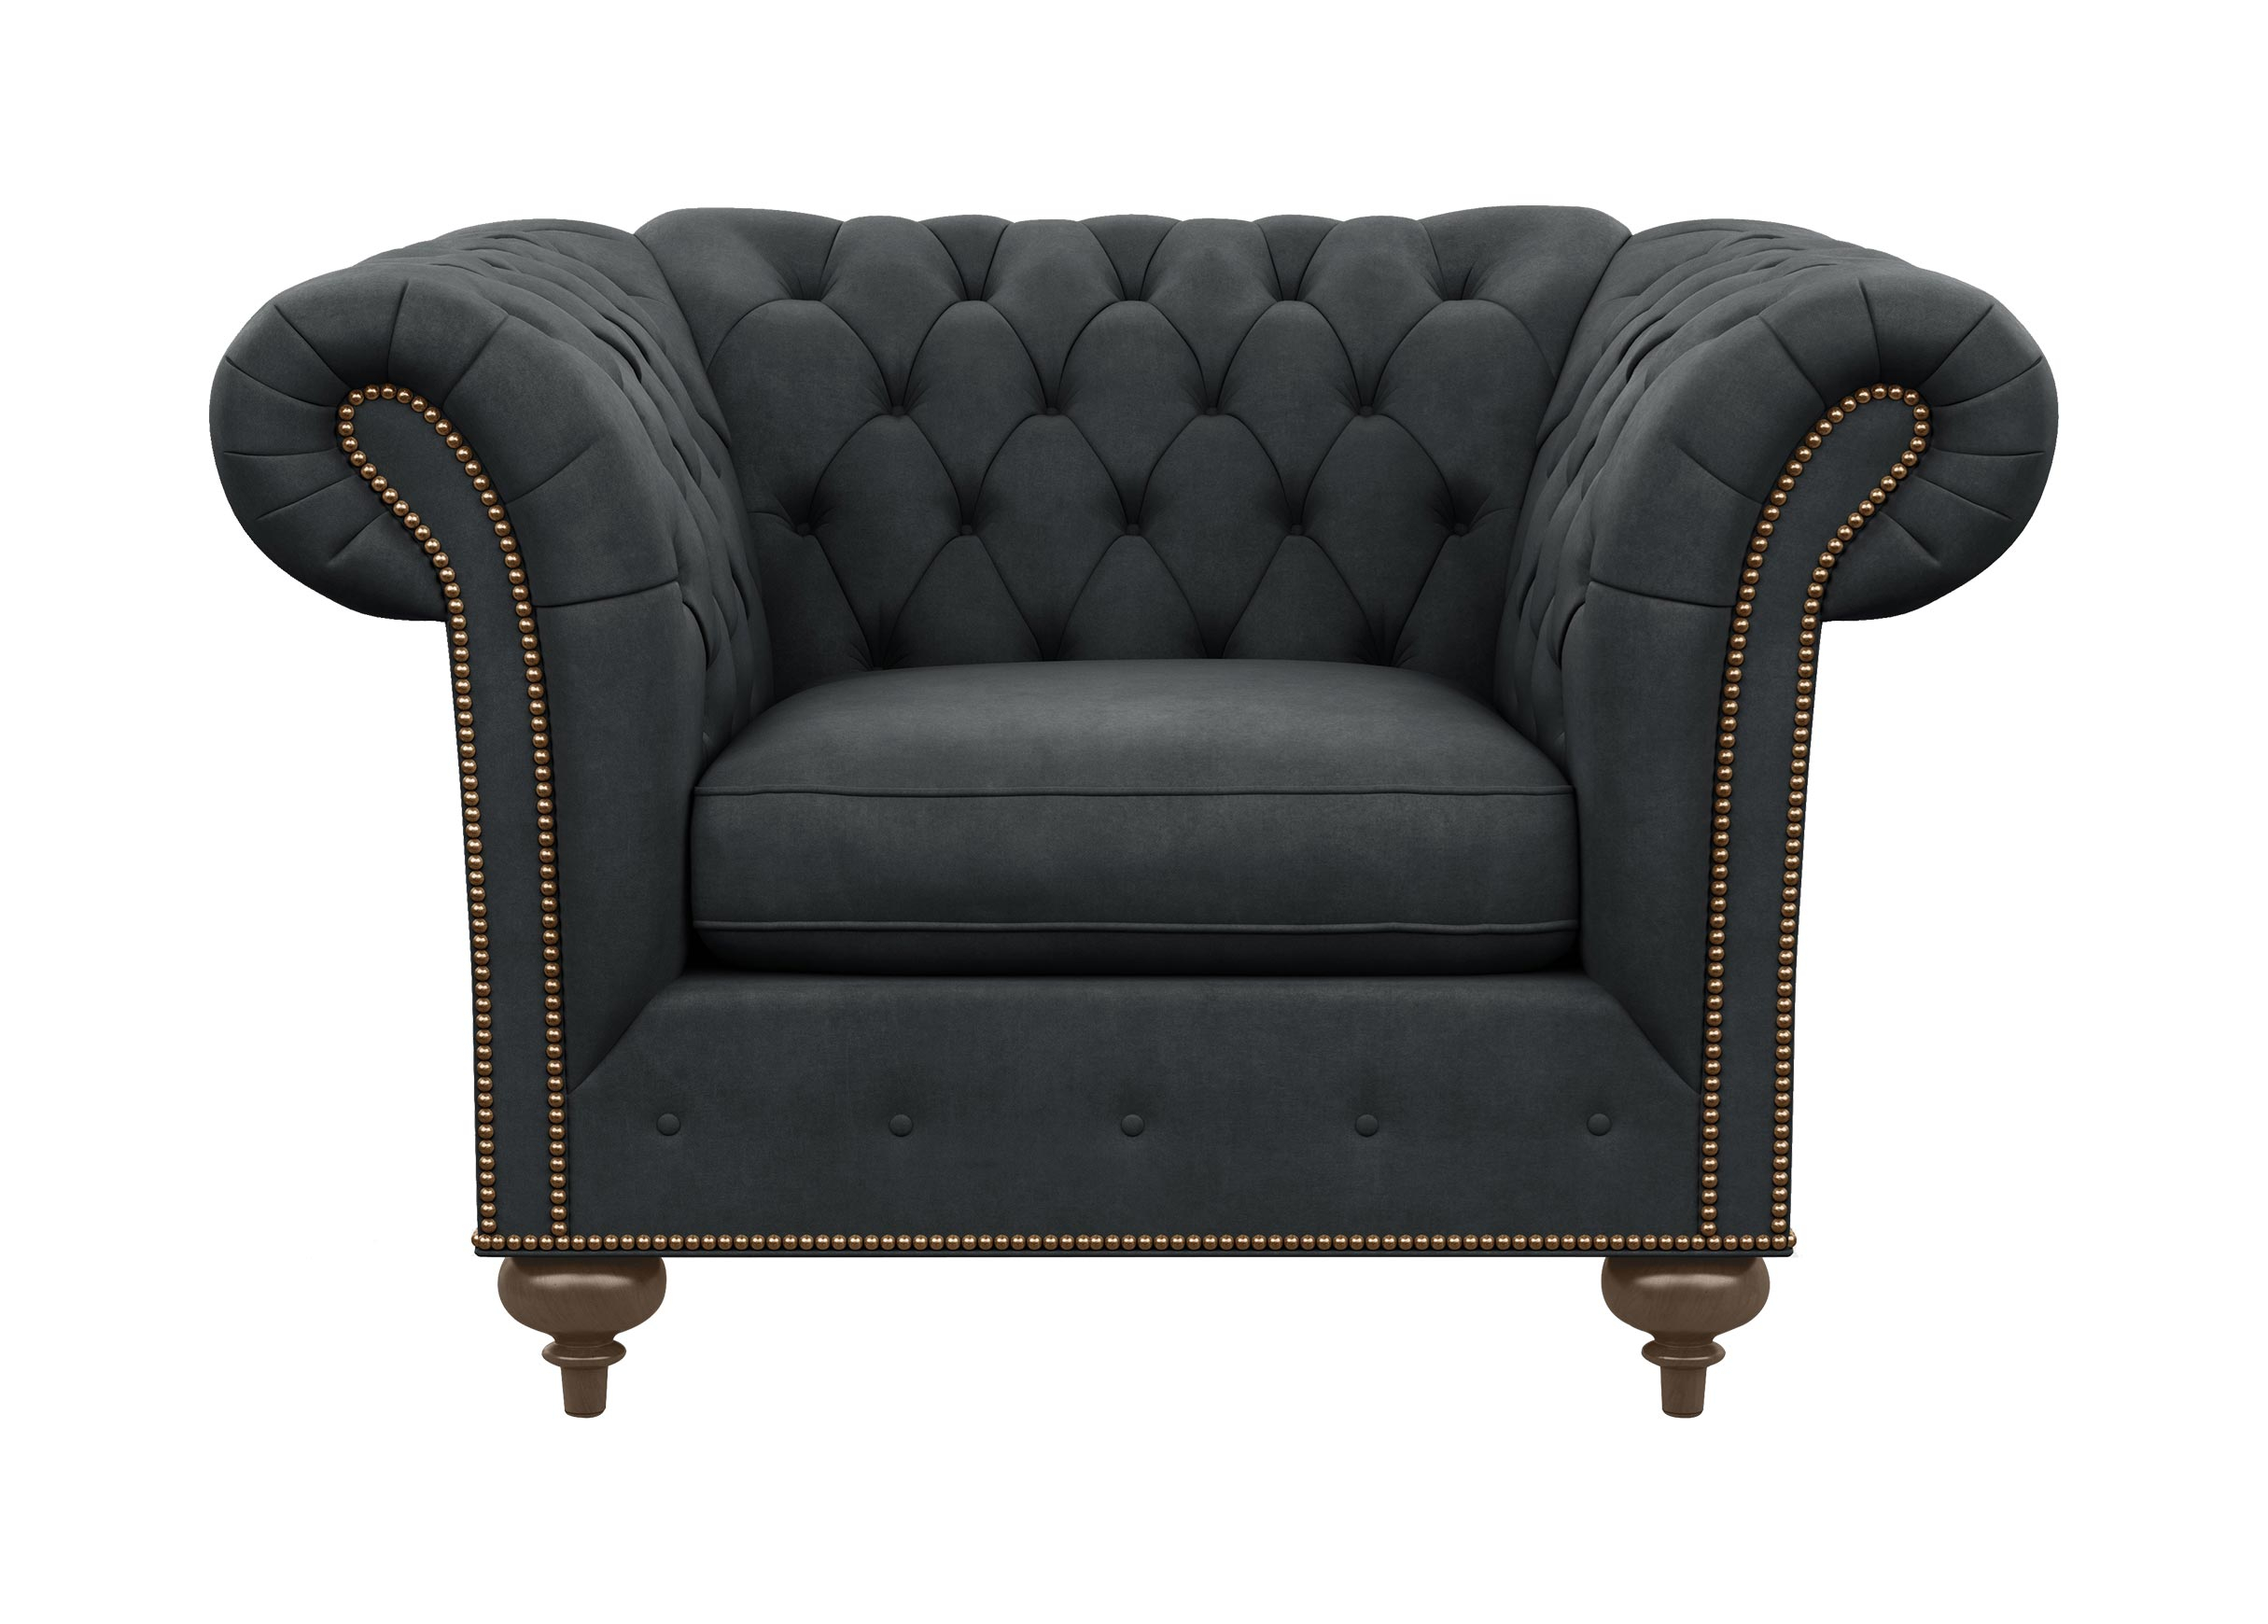 Mansfield Chair | Chairs & Chaises | Ethan Allen Pertaining To Mansfield Beige Linen Sofa Chairs (Image 14 of 25)